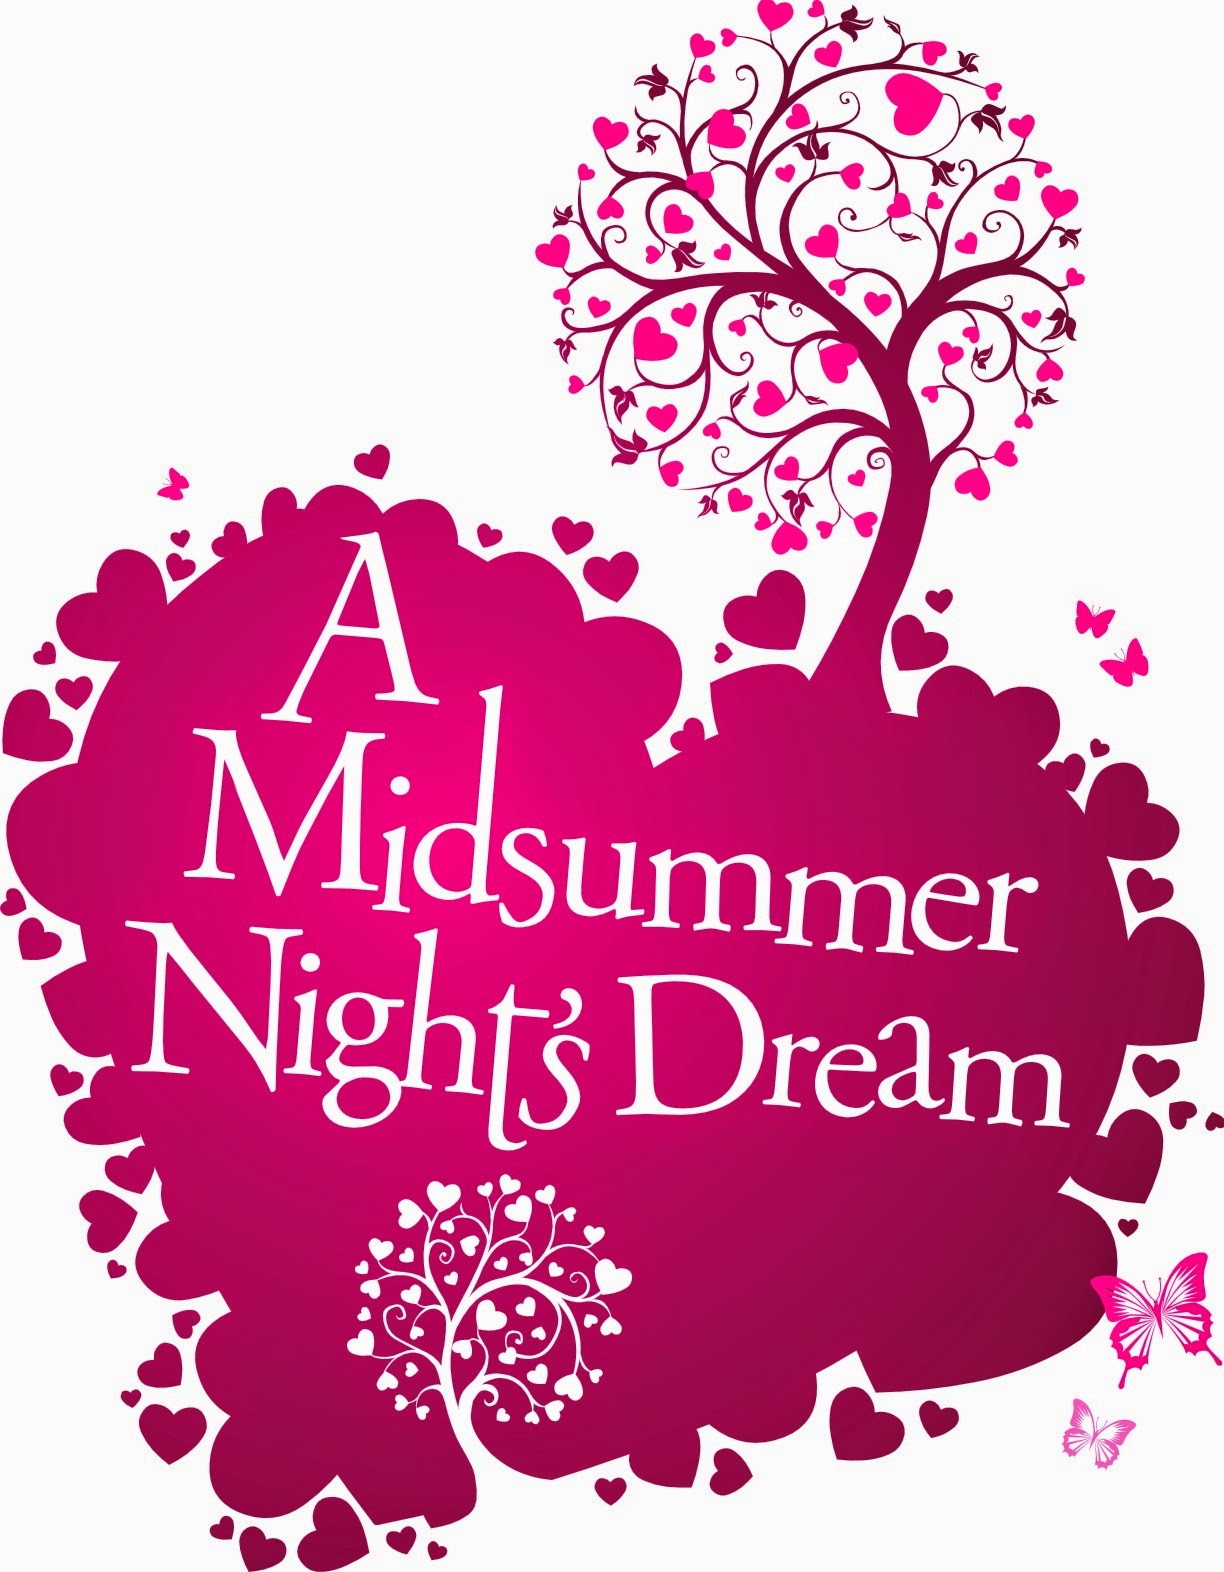 an analysis of love in a midsummer nights dream Oberon and titania from a midsummer night's dream are central characters our character analysis helps you understand them and their role in the play.